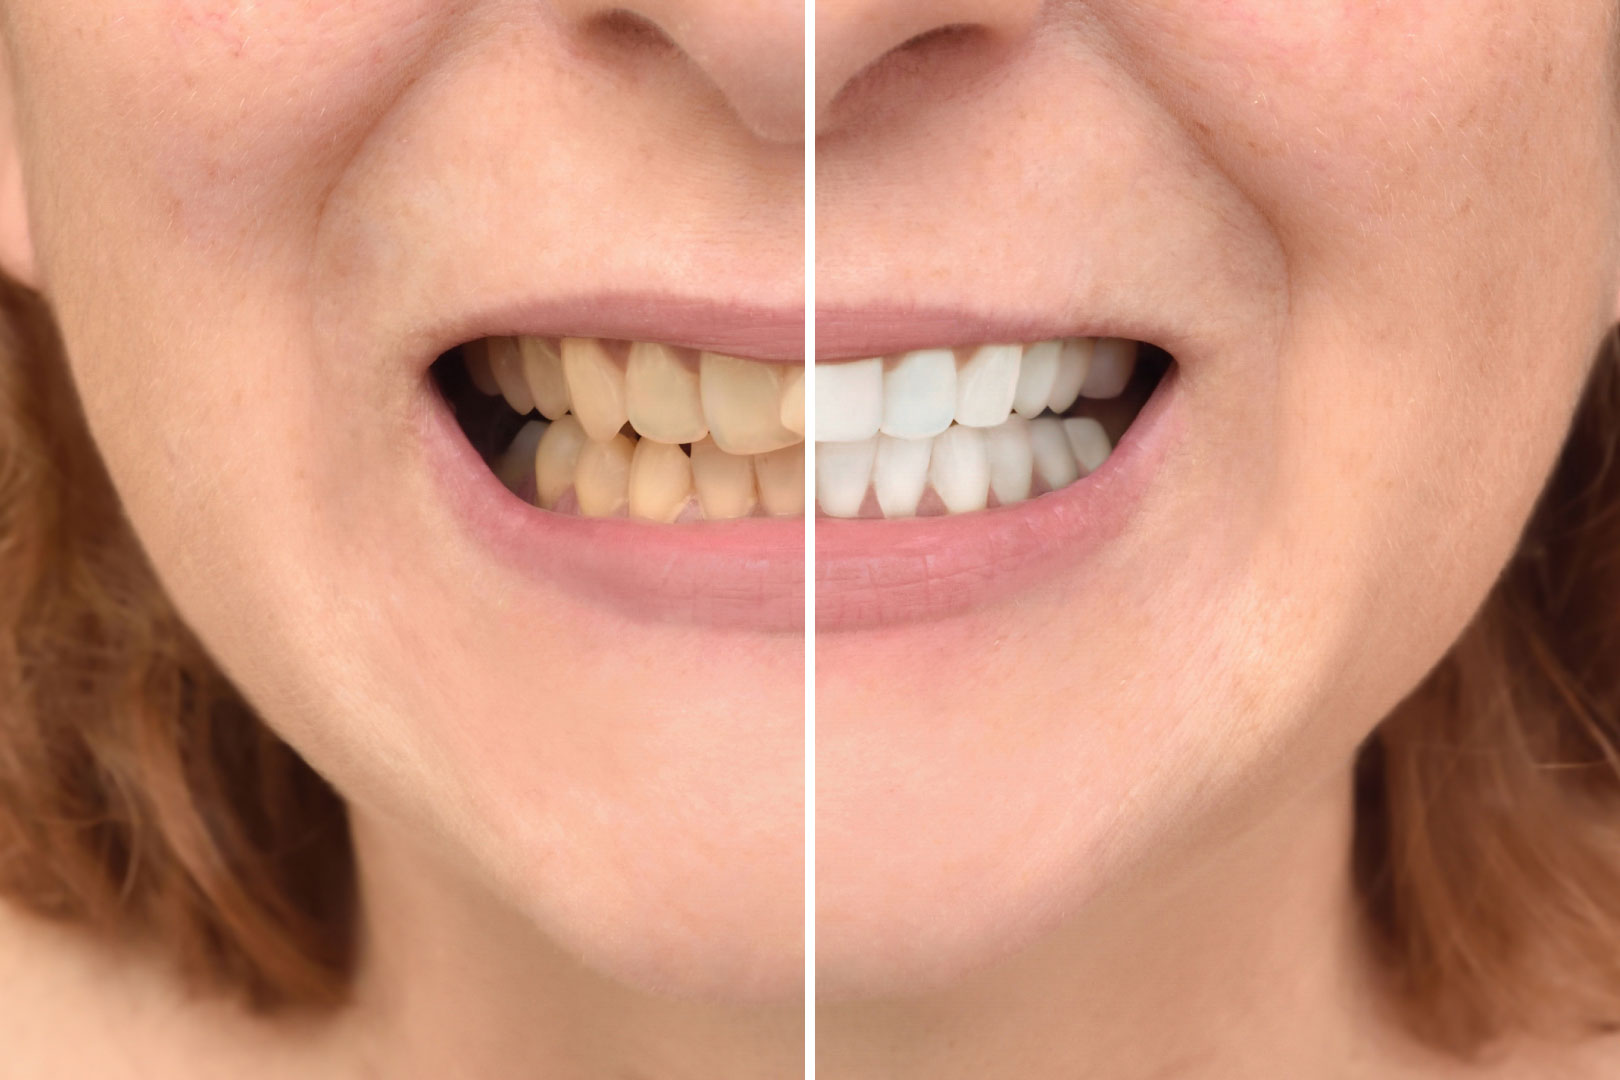 Smile Makeover - Before and After - Lux Smiles Dental